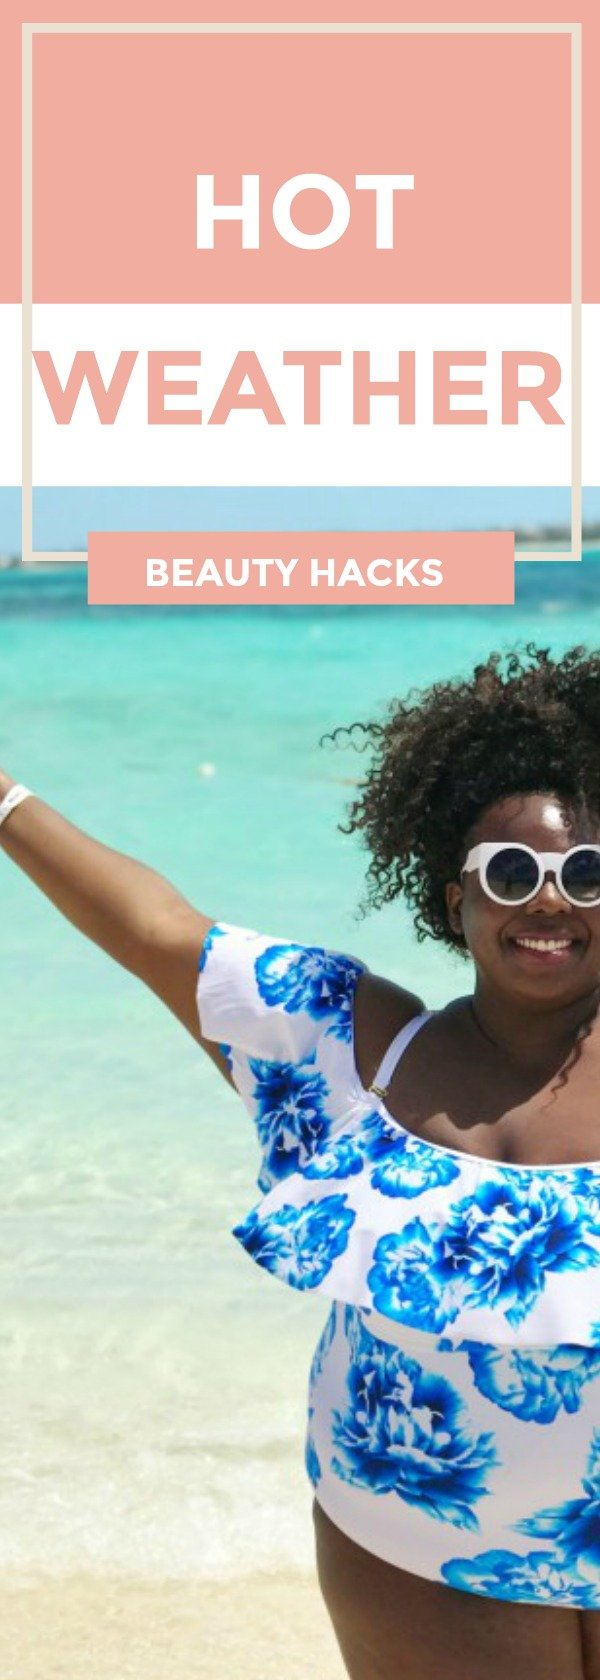 5 HOT WEATHER BEAUTY HACKS